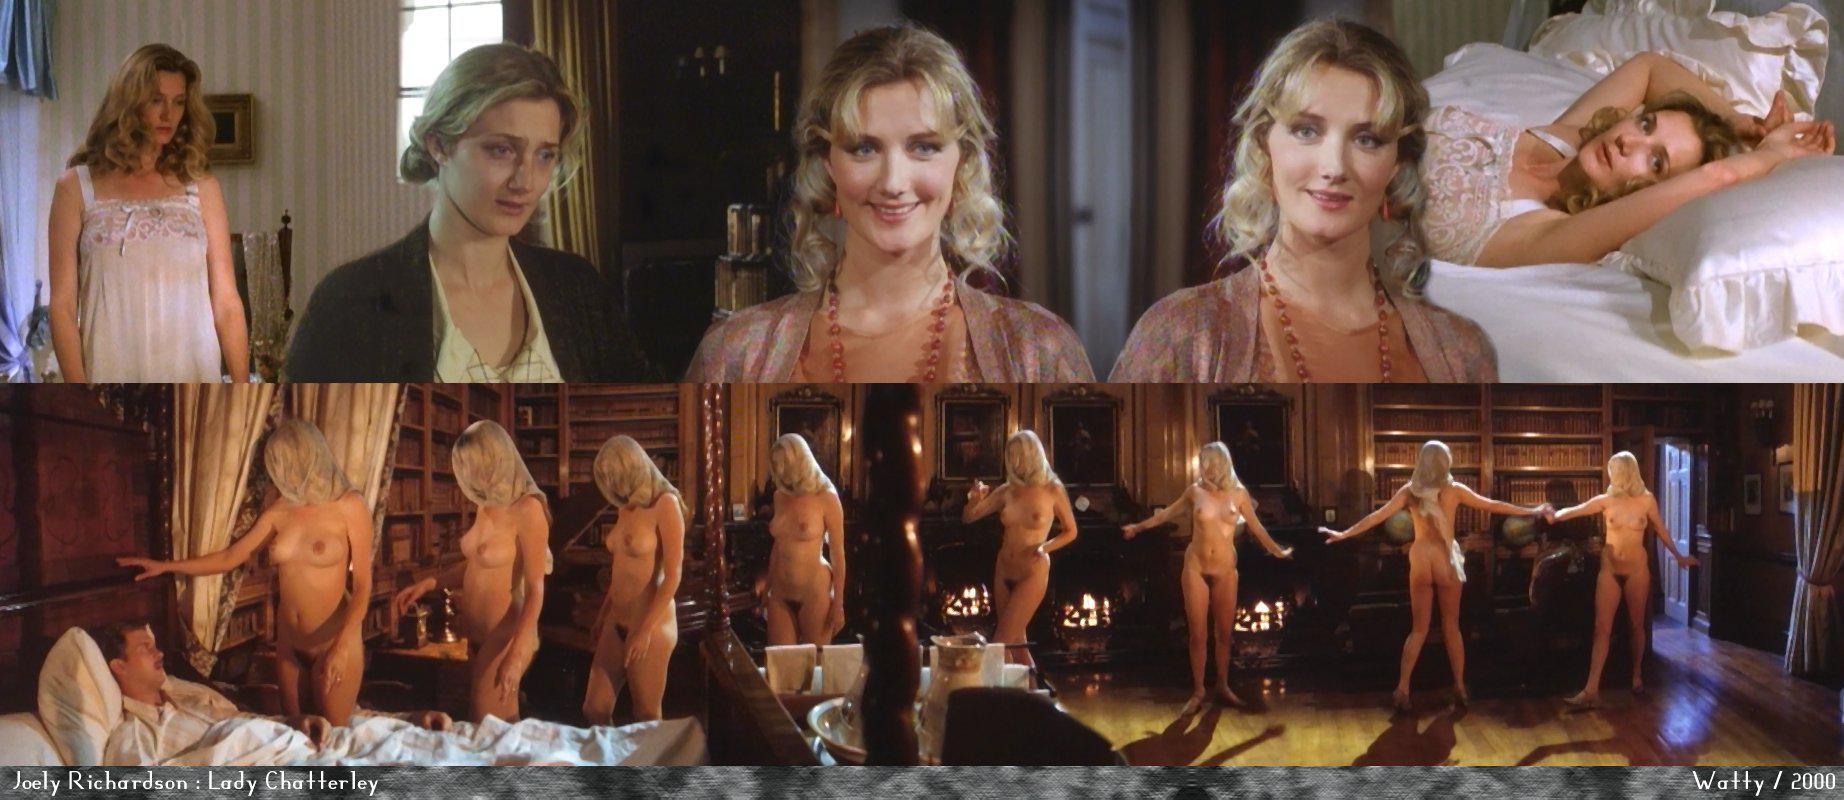 Joely richardson erect nipples in lady chatterley movie 9